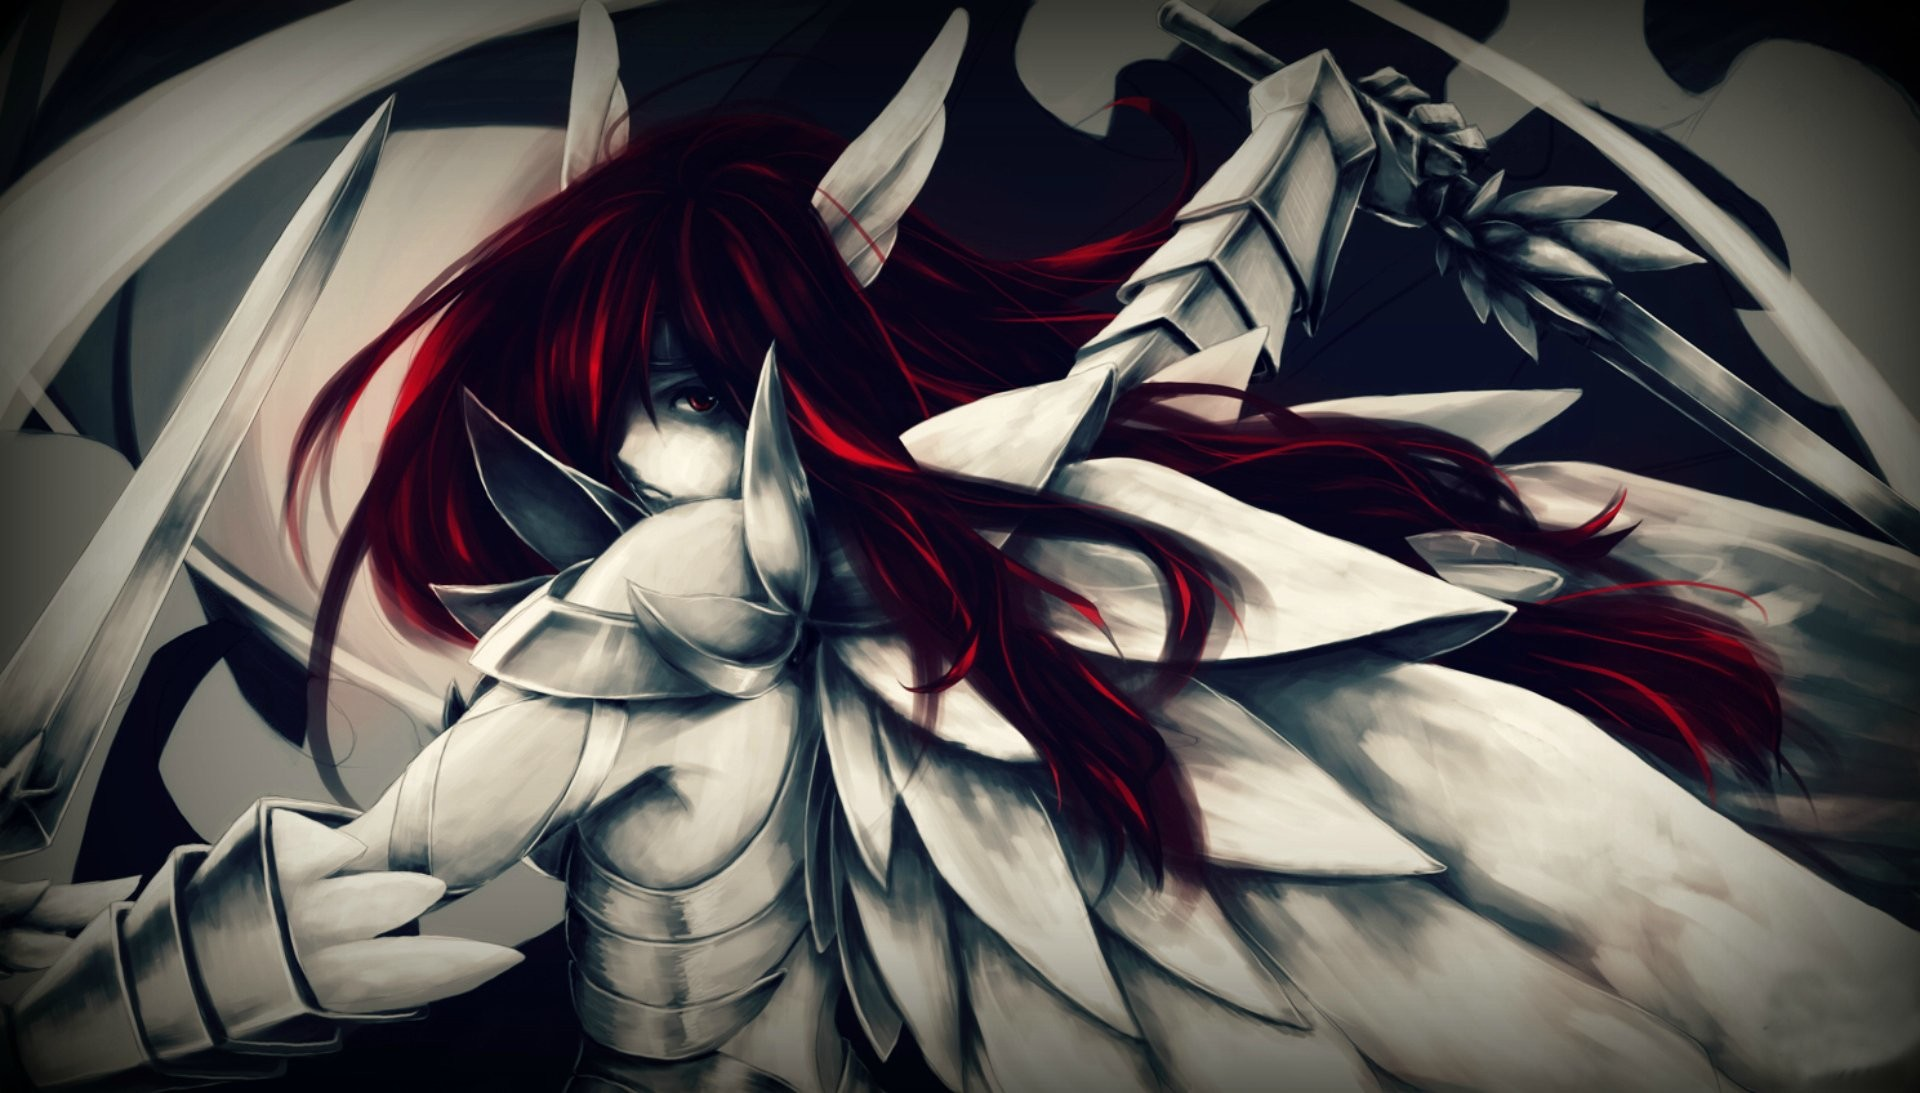 1920x1093 Anime - Fairy Tail Erza Scarlet Armor Red Hair Long Hair Schwert Wallpaper